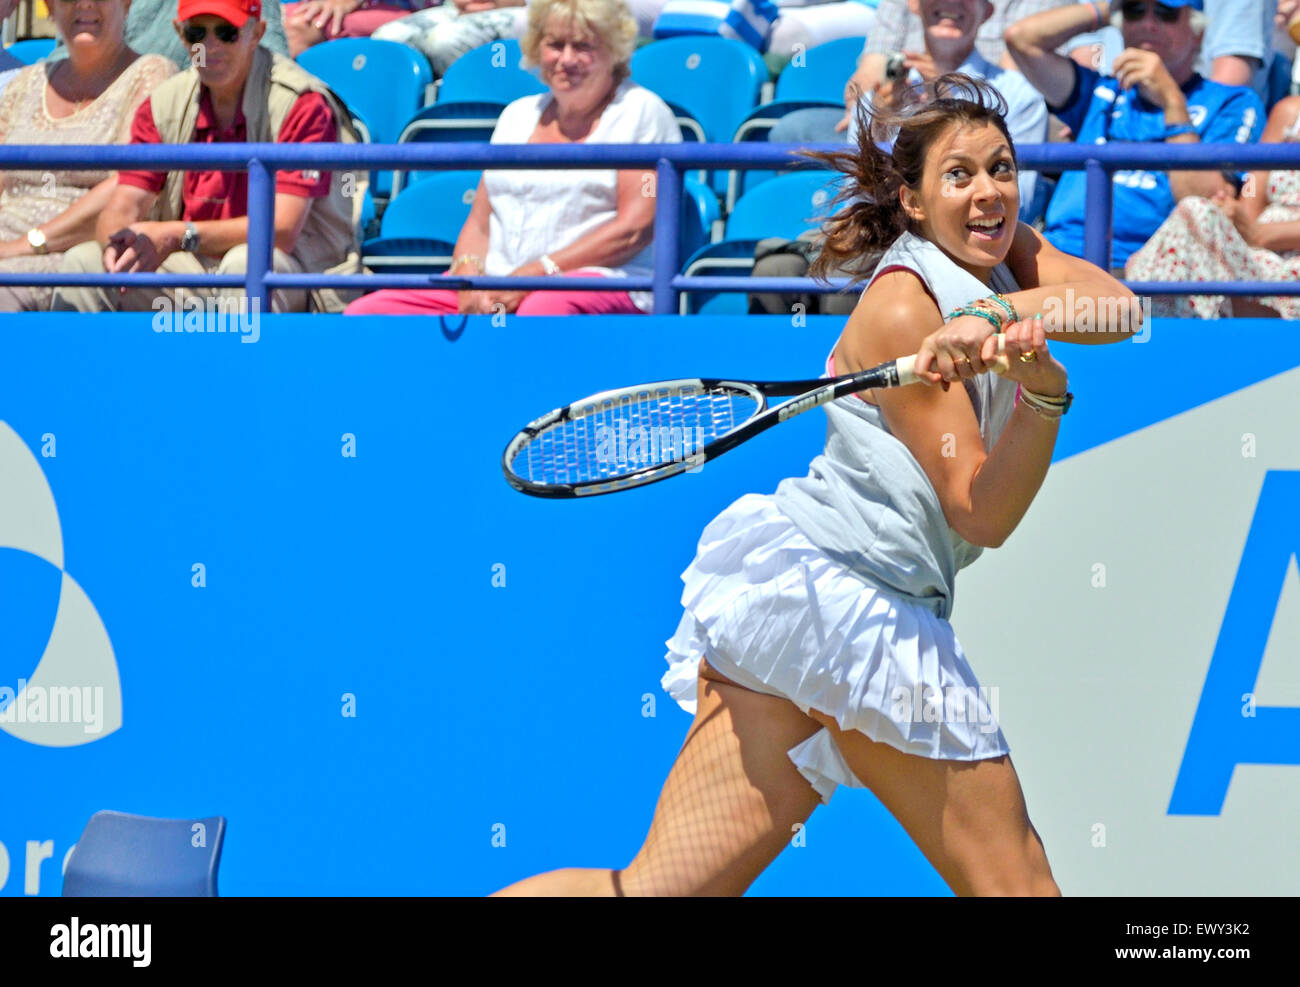 Marion Bartoli (France) playing in the AEGON INTERNATIONAL LEGENDS CHALLENGE, Eastbourne, 2015 - Stock Image